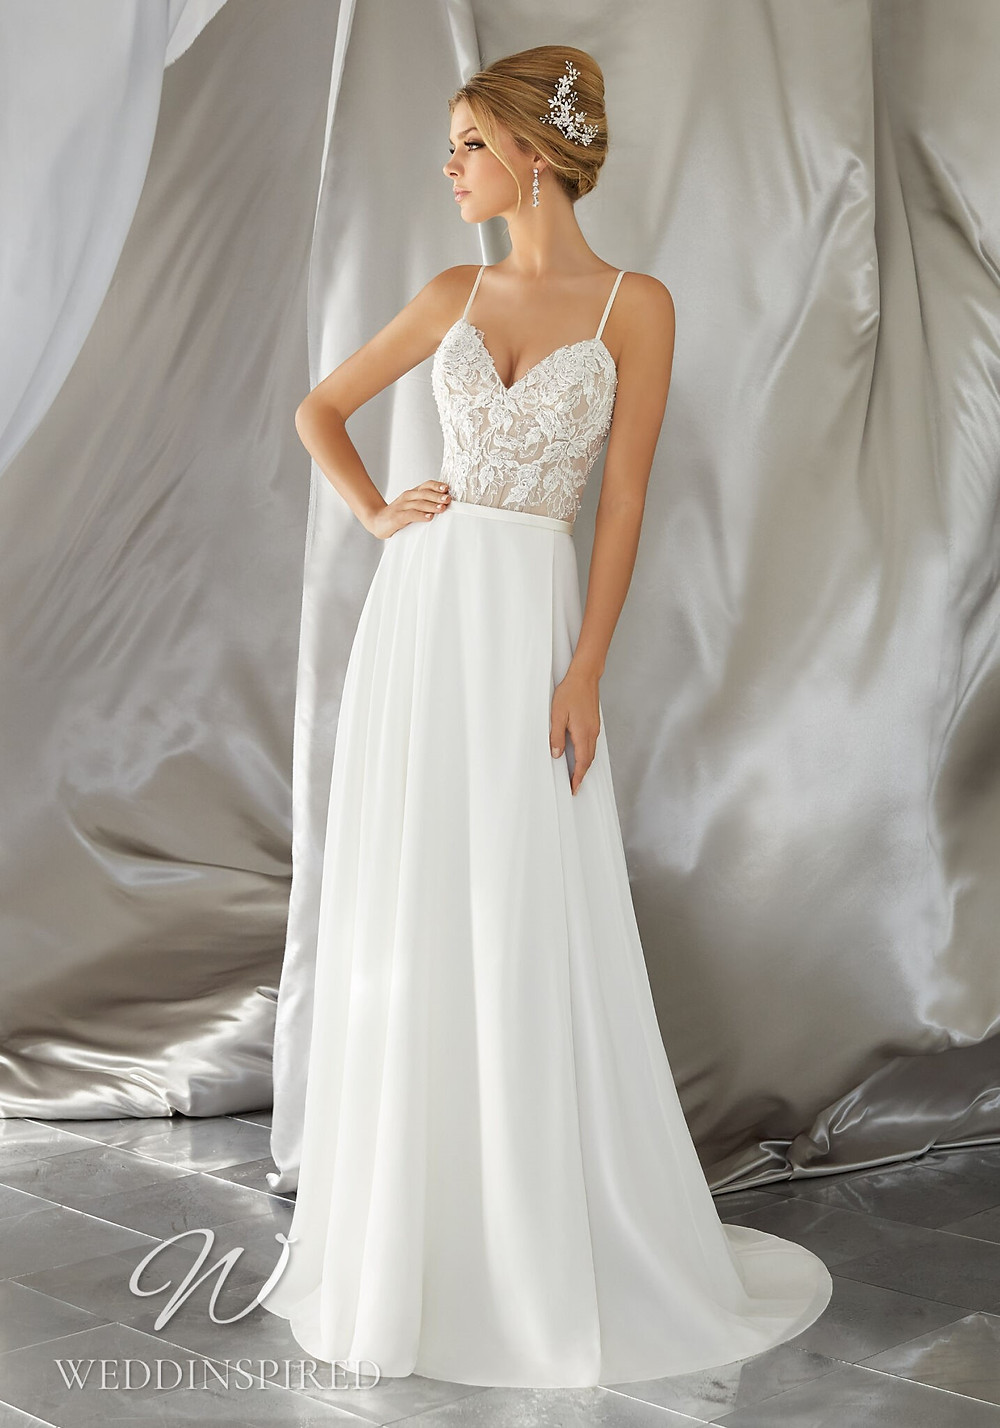 A Madeline Gardner lace and chiffon A-line wedding dress with straps